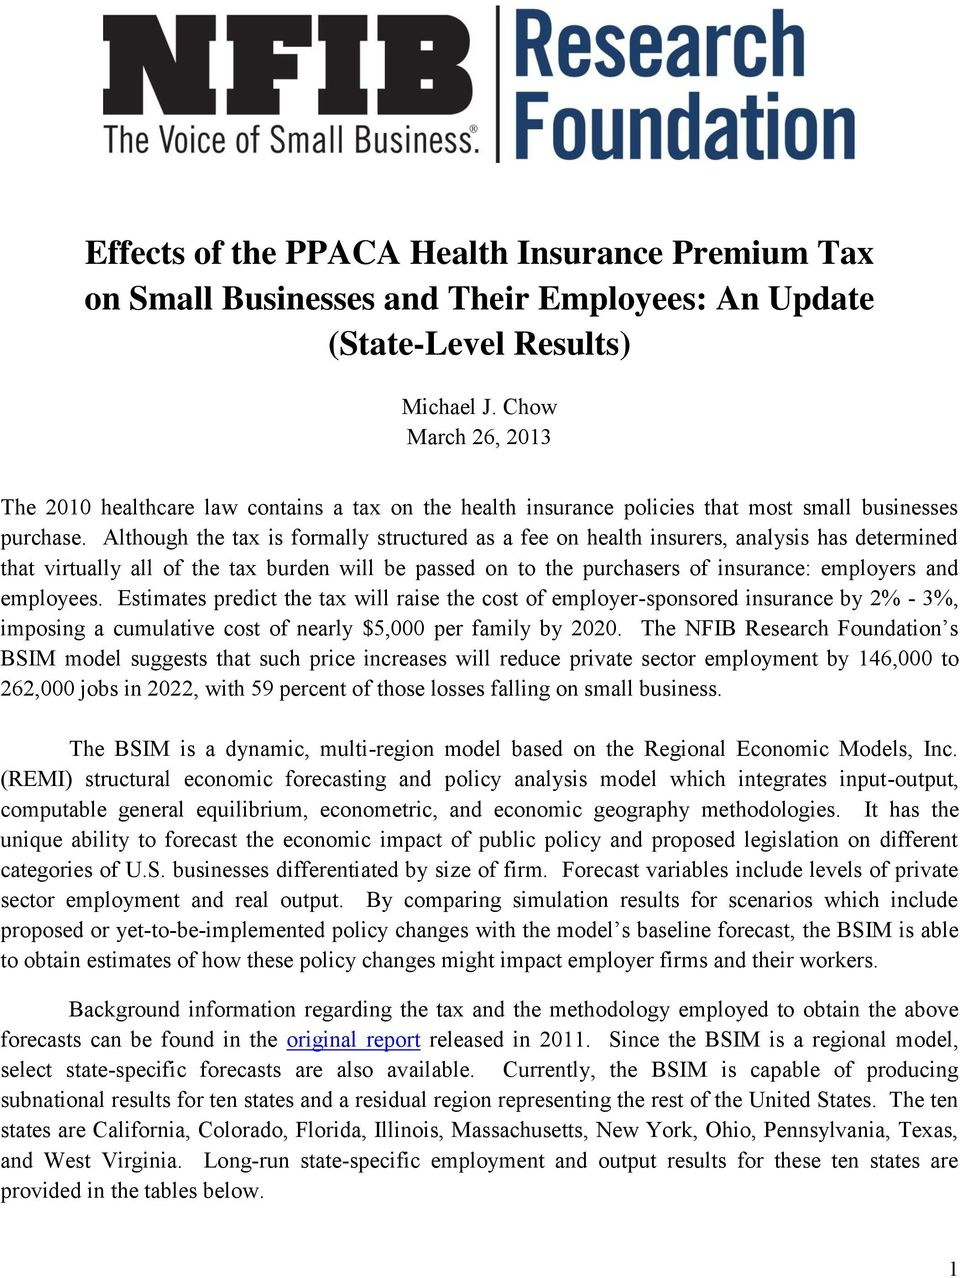 Although the tax is formally structured as a fee on health insurers, analysis has determined that virtually all of the tax burden will be passed on to the purchasers of insurance: employers and